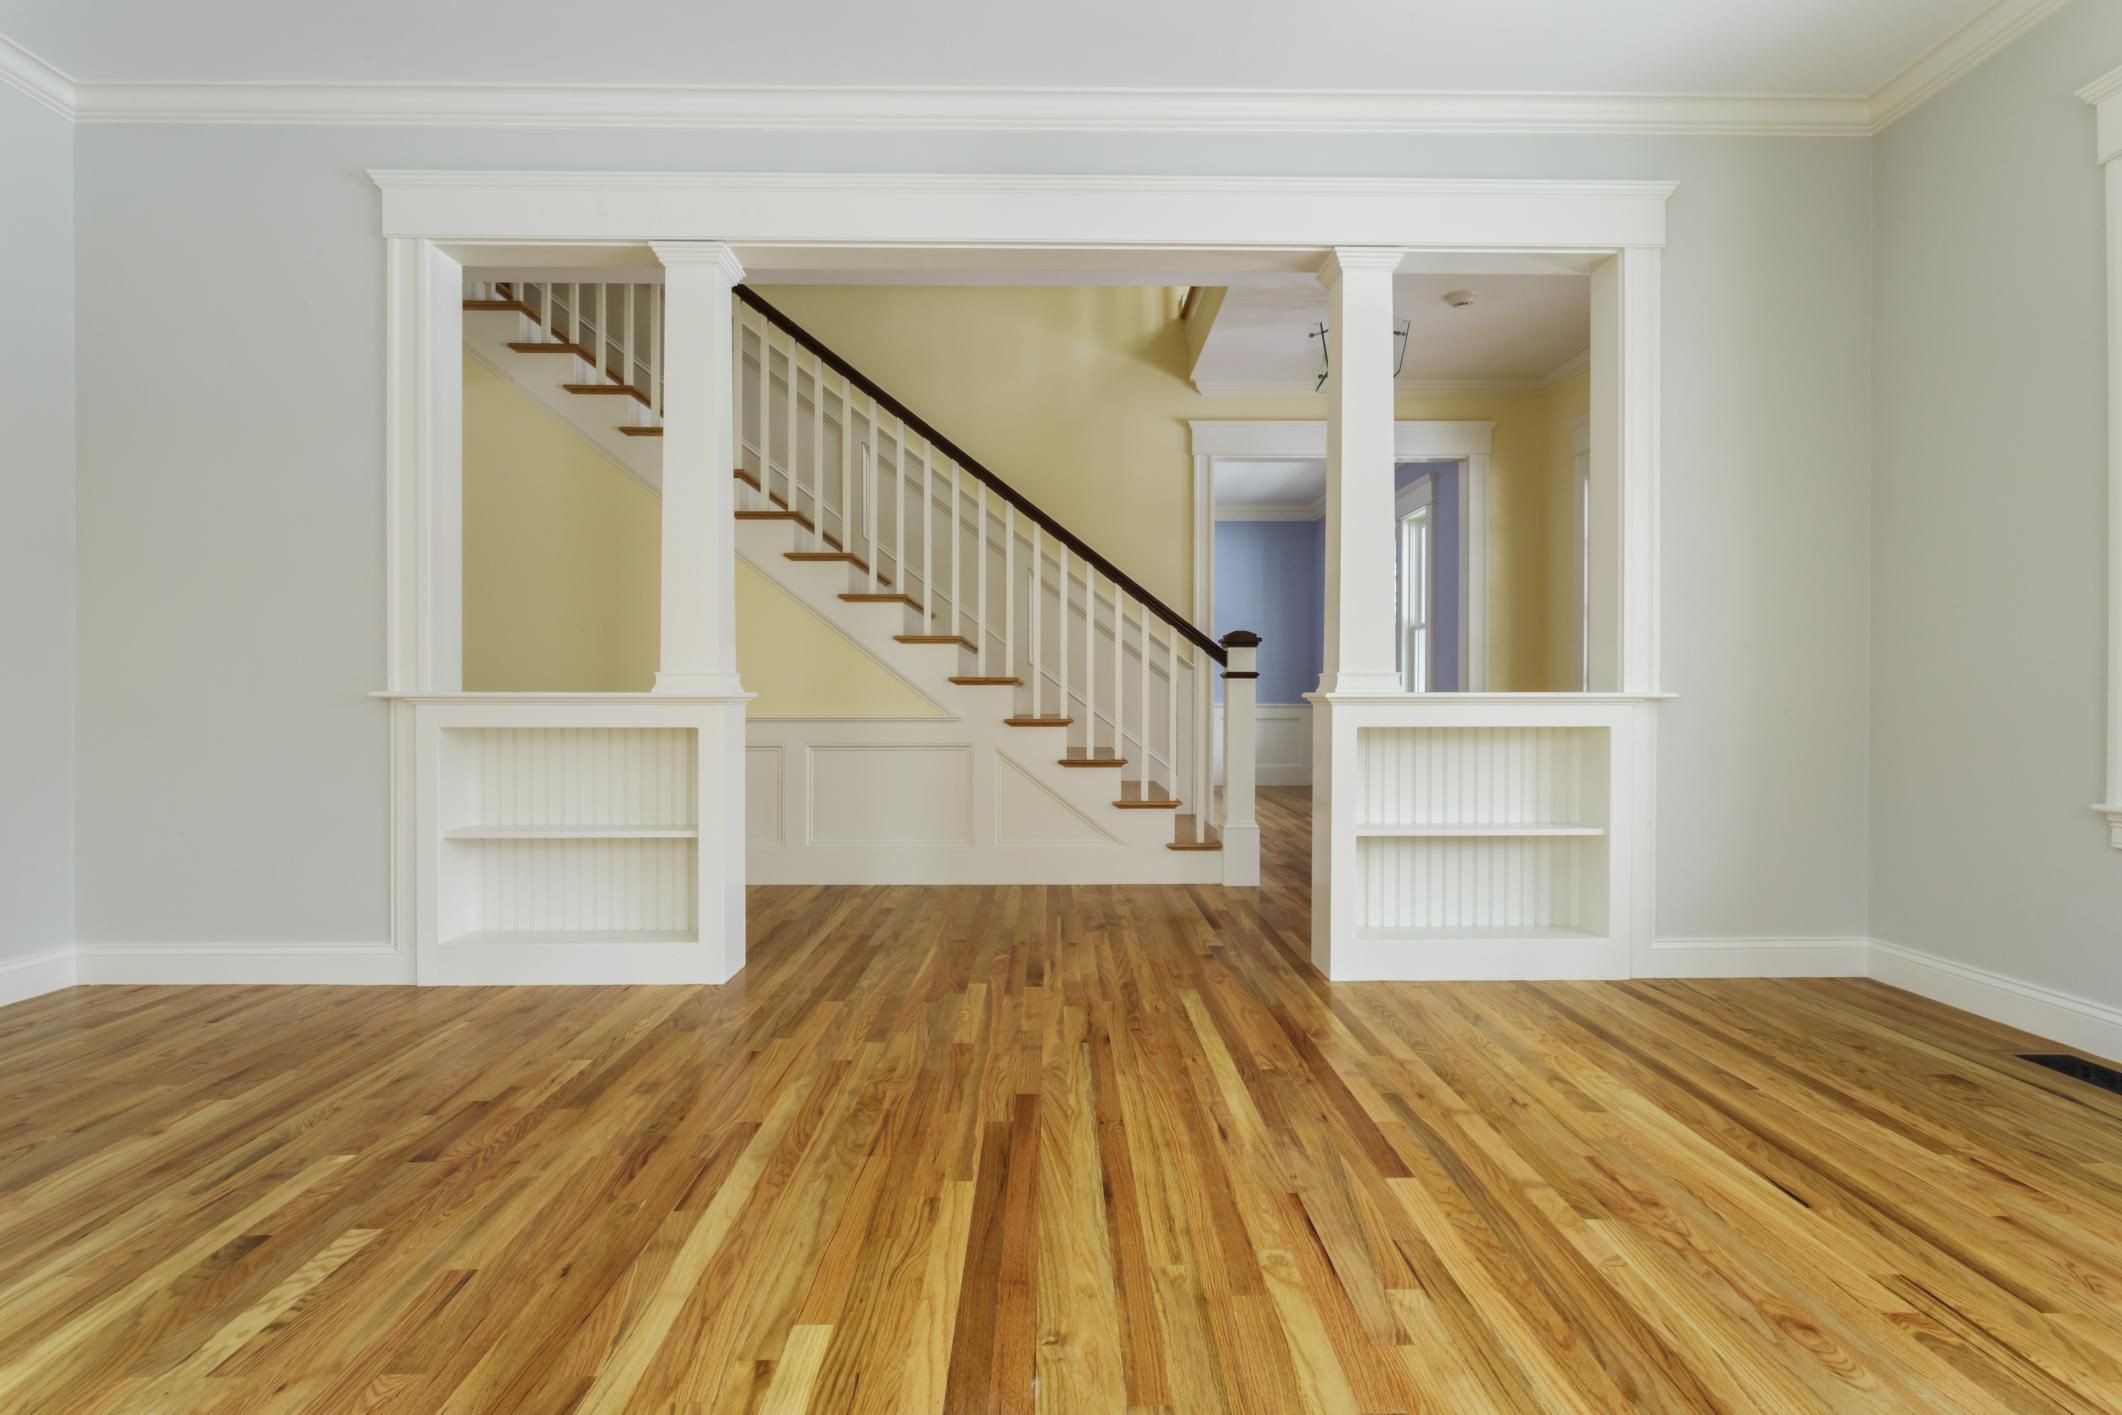 hardwood floors next to tile of guide to solid hardwood floors with 168686571 56a49f213df78cf772834e24